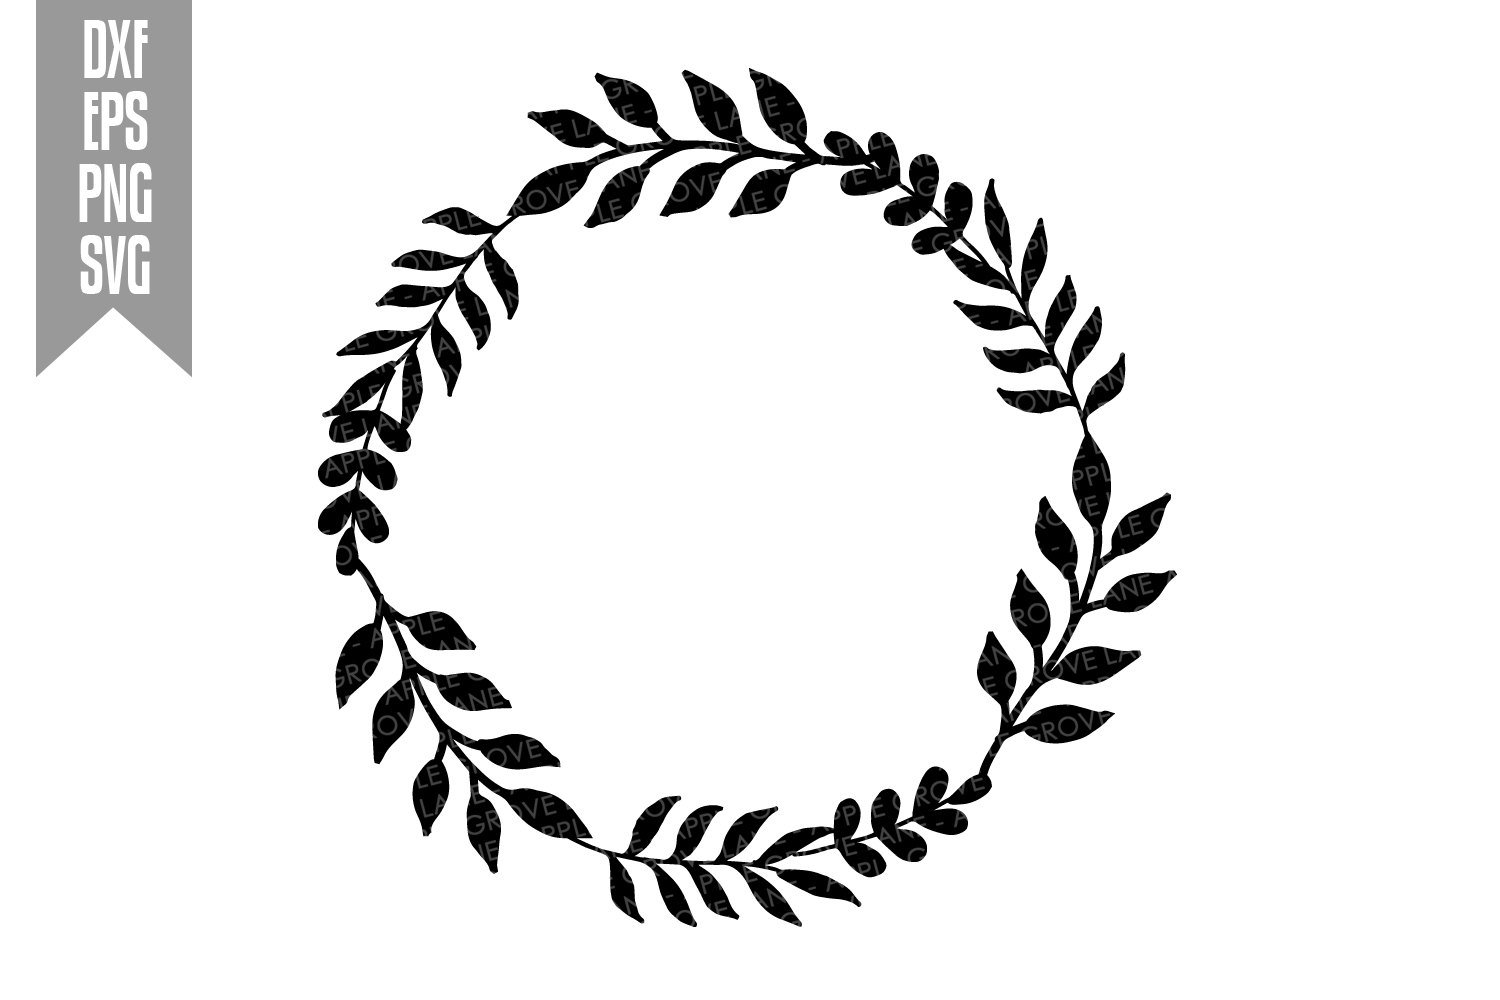 Wreath Svg Bundle - 6 designs included - Svg Cut Files example image 9